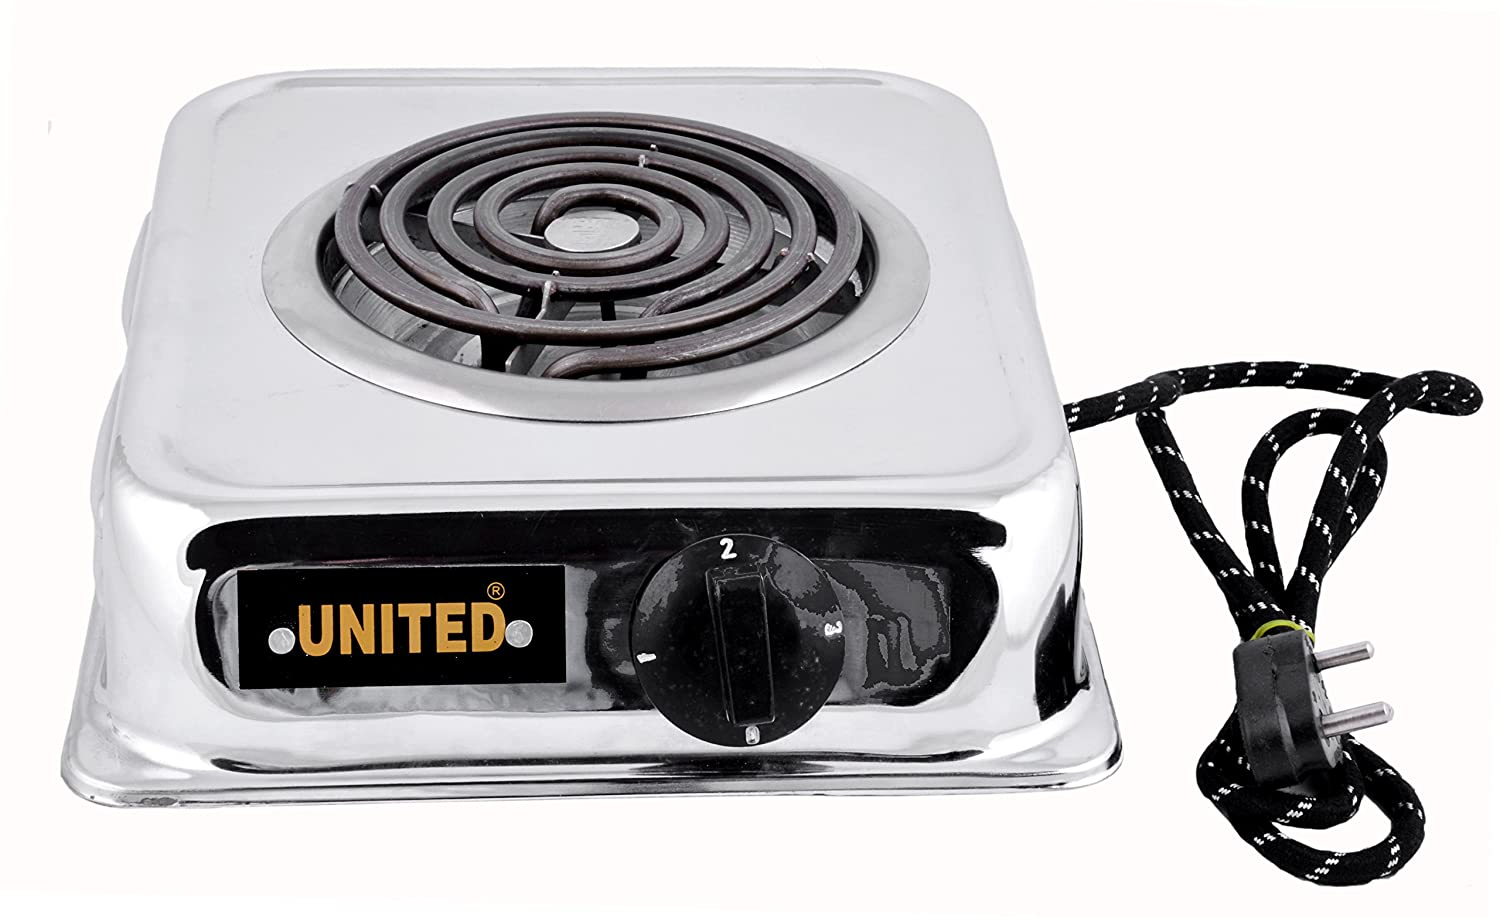 United G.C1250 1250W G Coil Induction Cooktop